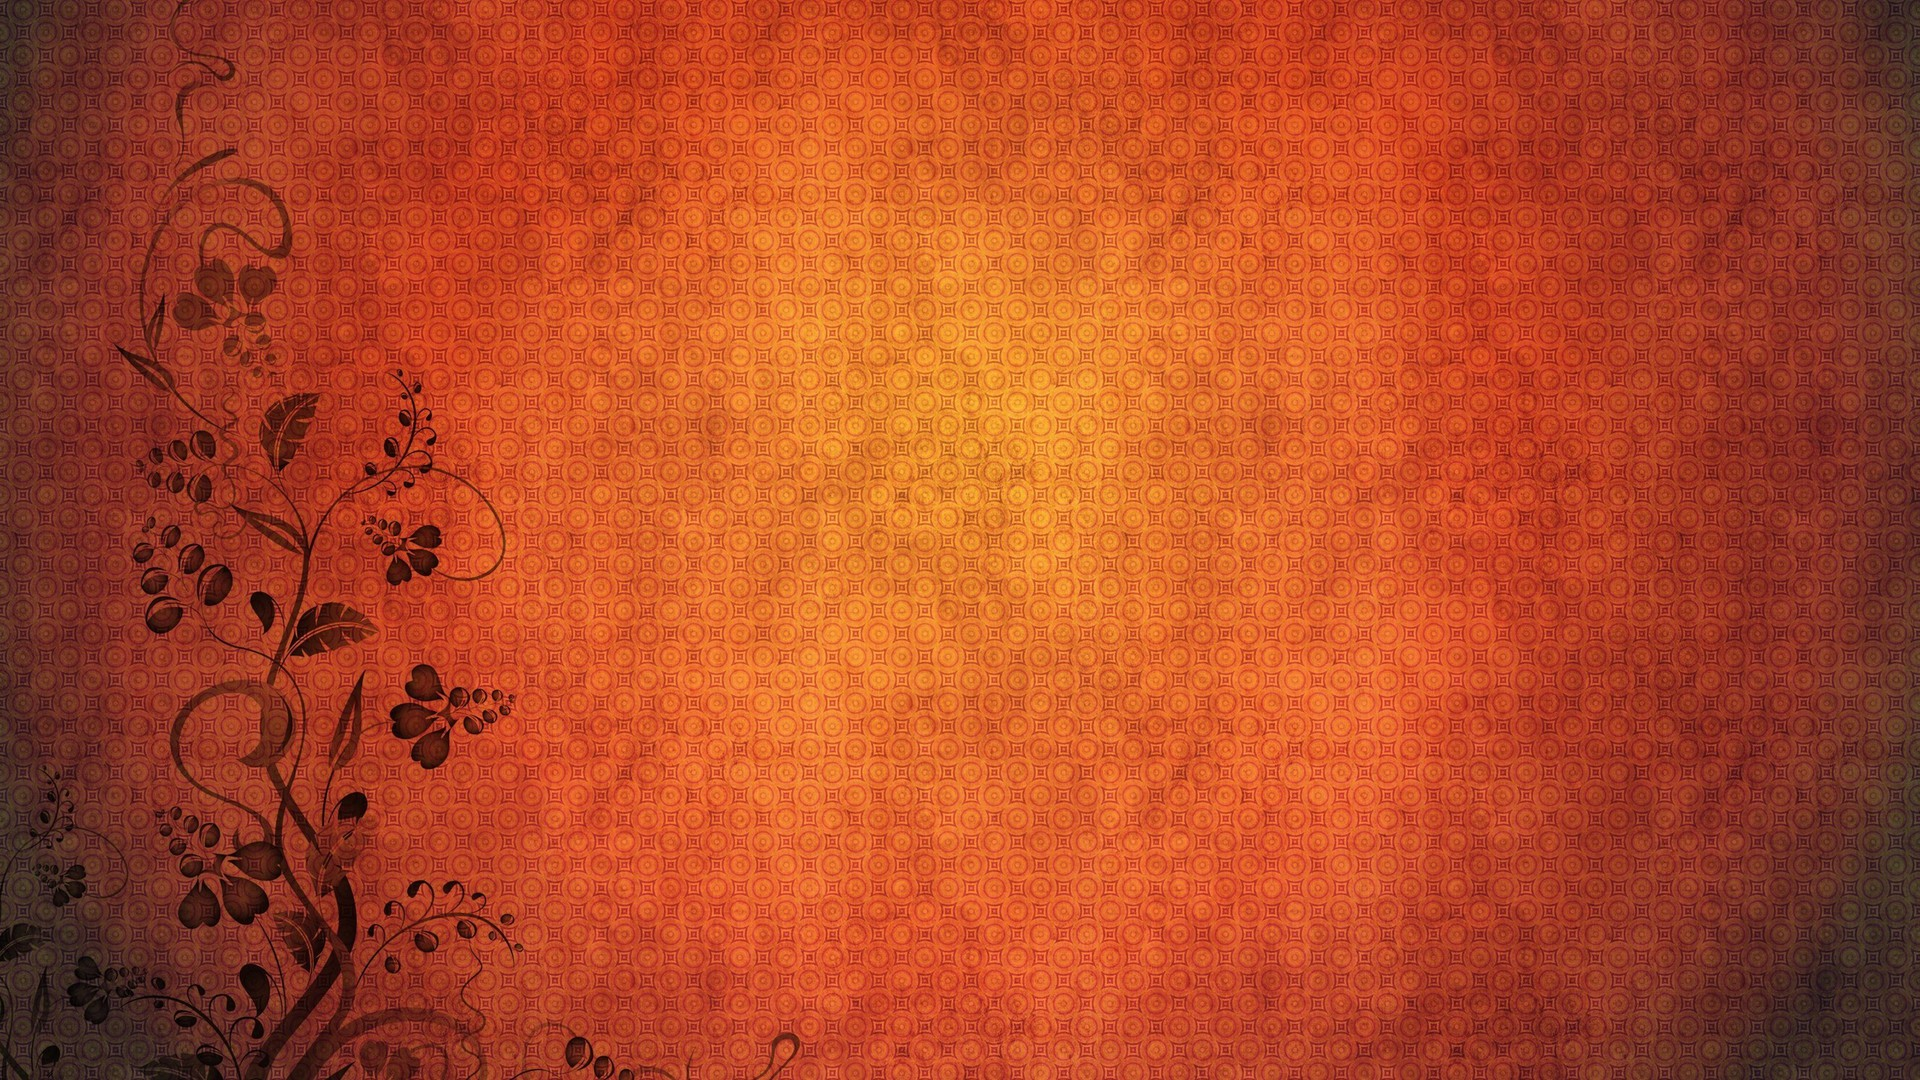 Minimalistic orange patterns simple background textures for Easy wallpaper ideas